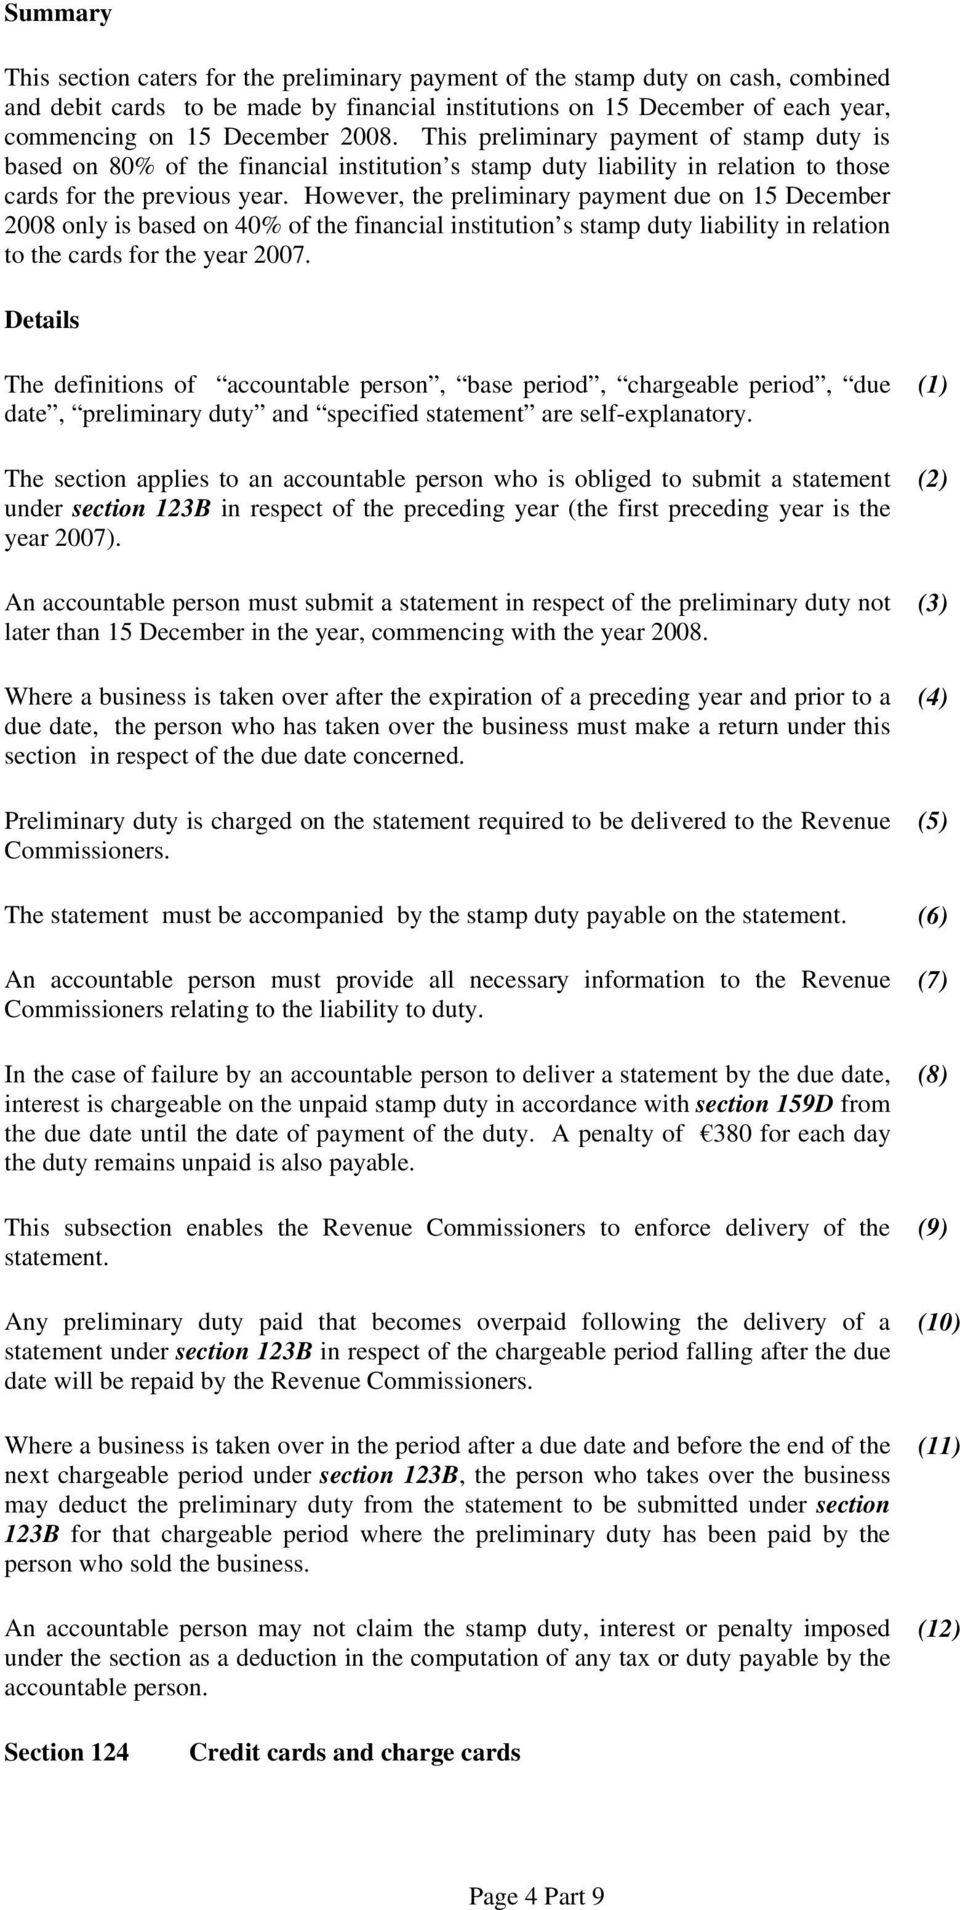 However, the preliminary payment due on 15 December 2008 only is based on 40% of the financial institution s stamp duty liability in relation to the cards for the year 2007.